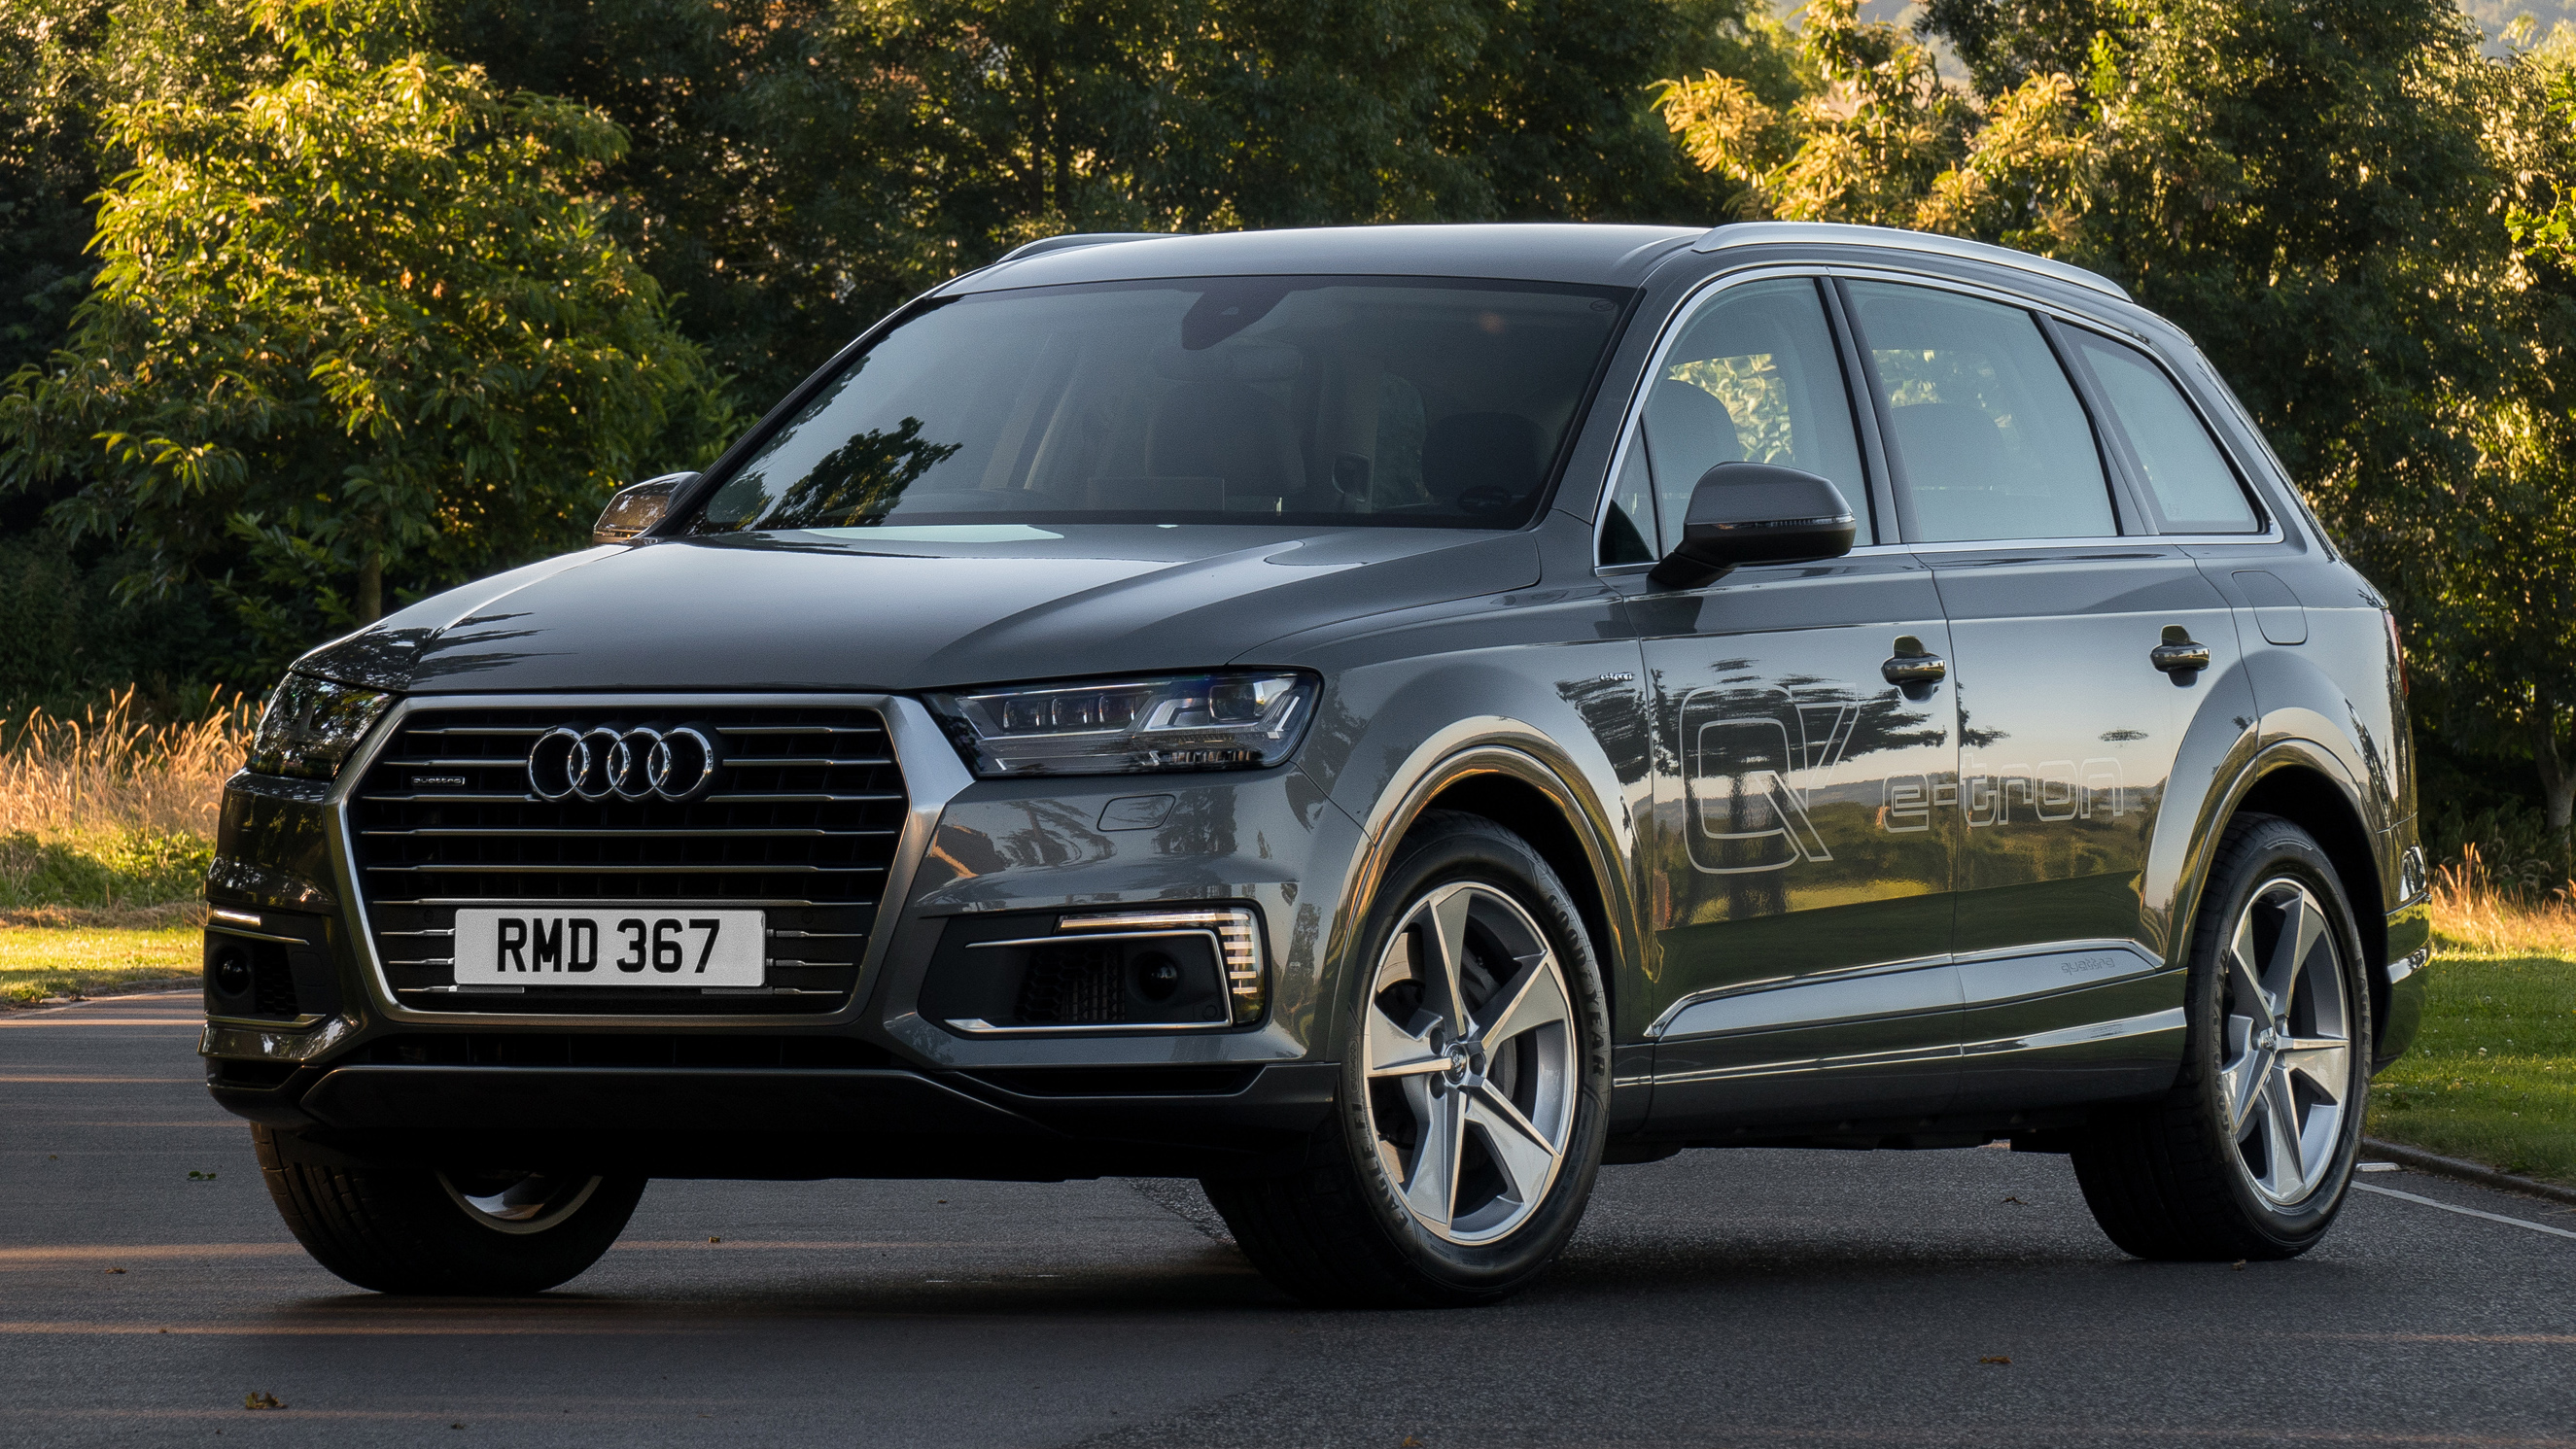 audi q7 e tron quattro review hybrid suv tested top gear. Black Bedroom Furniture Sets. Home Design Ideas